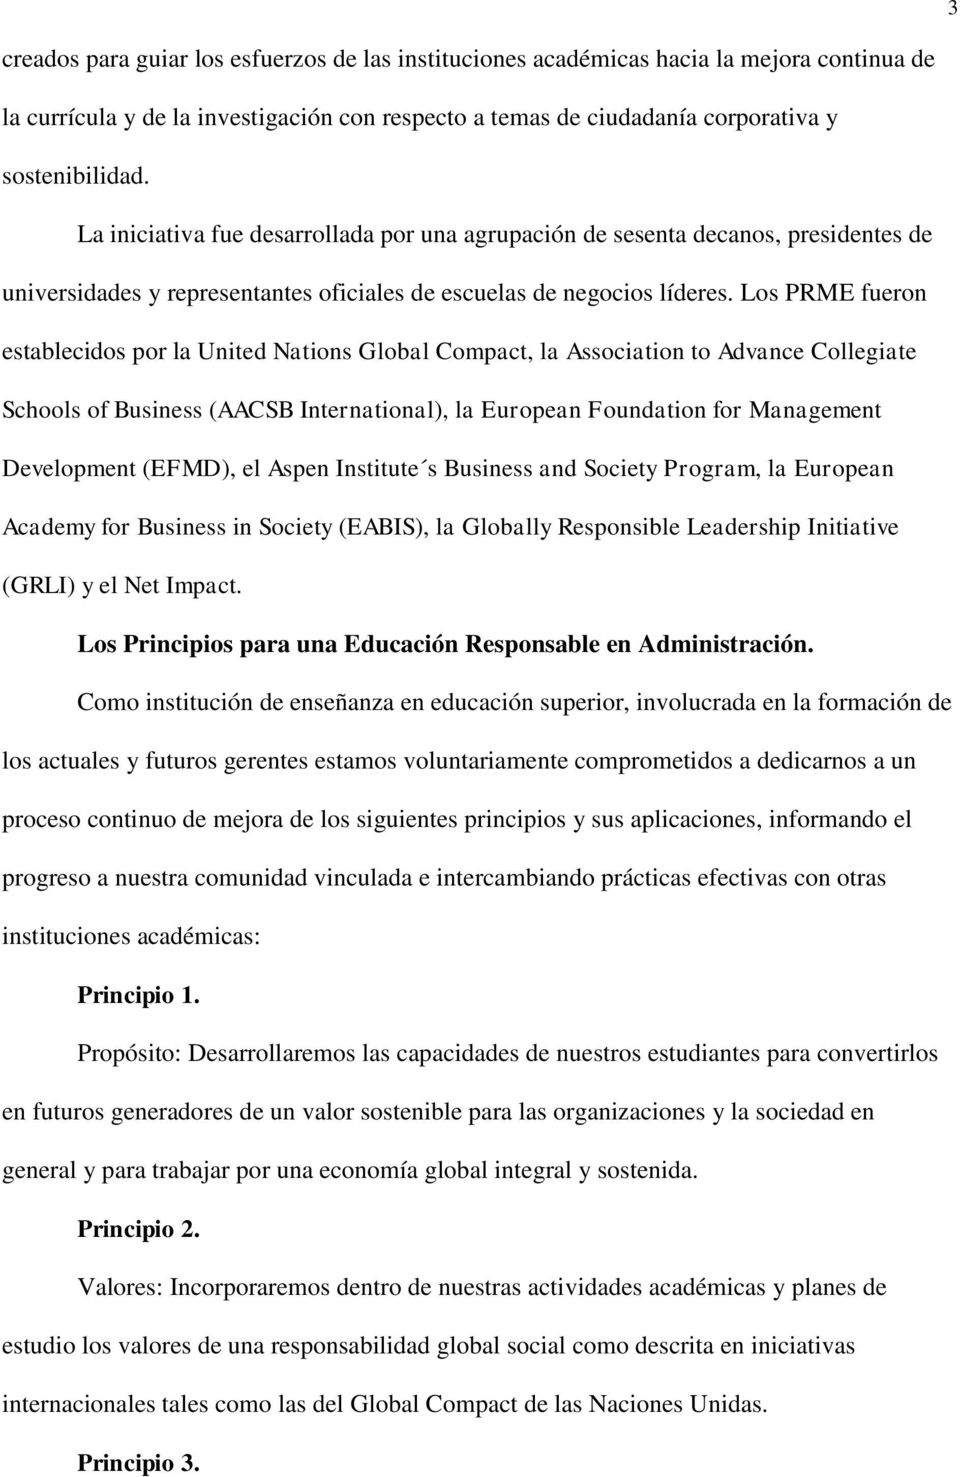 Los PRME fueron establecidos por la United Nations Global Compact, la Association to Advance Collegiate Schools of Business (AACSB International), la European Foundation for Management Development